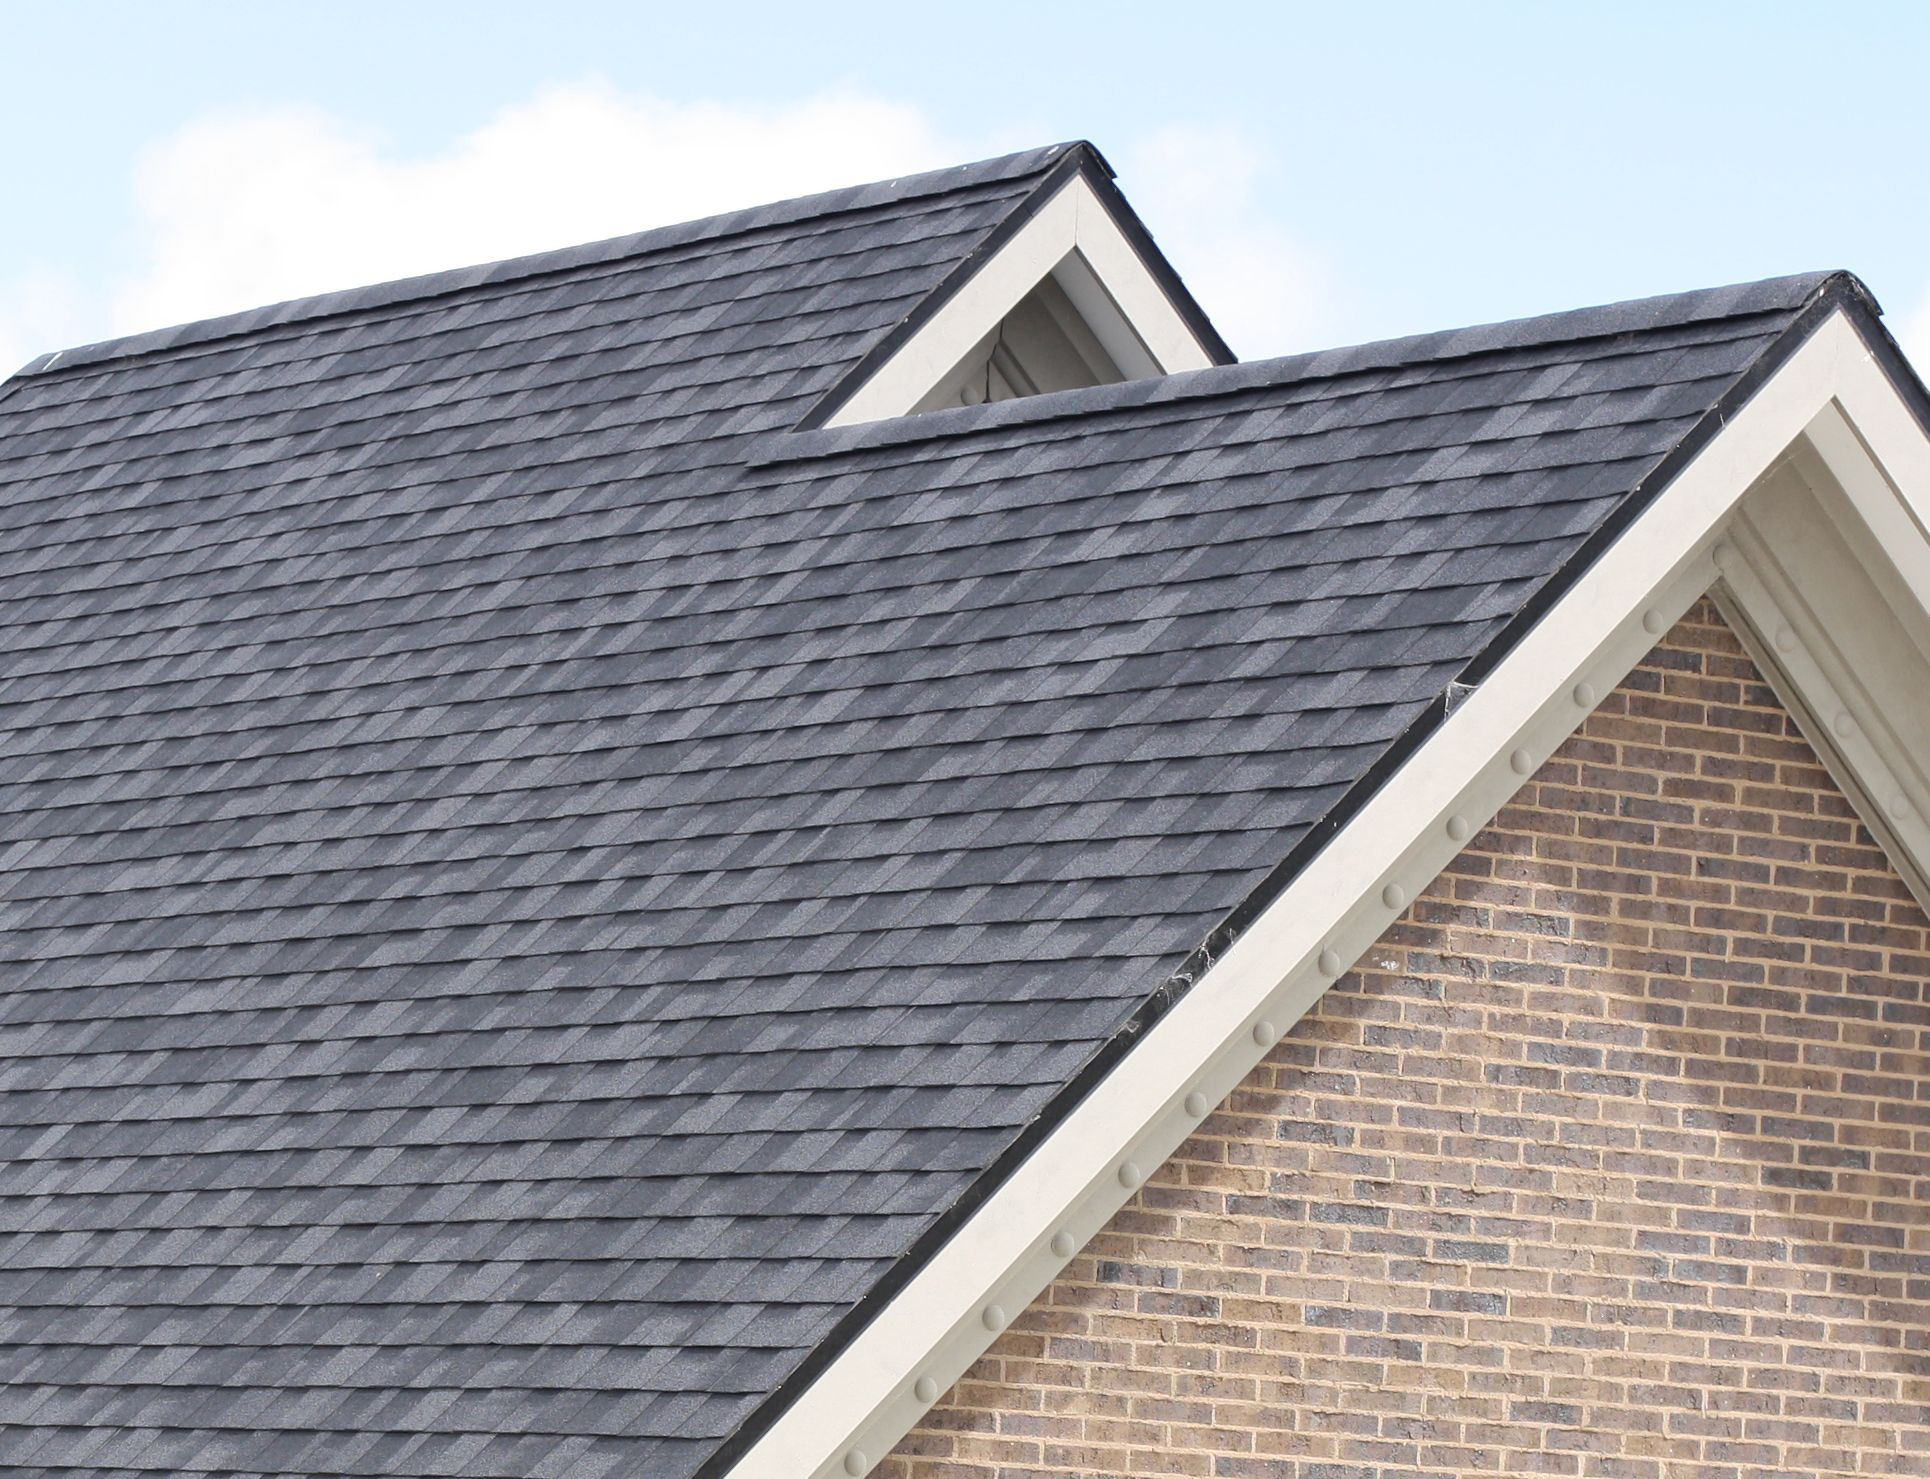 If You Are Looking For The Shingle Roof In Atlanta Ga You Have Come To The Right Place We Are One The Best Companies Providi Roofing Roof Shingles Cool Roof